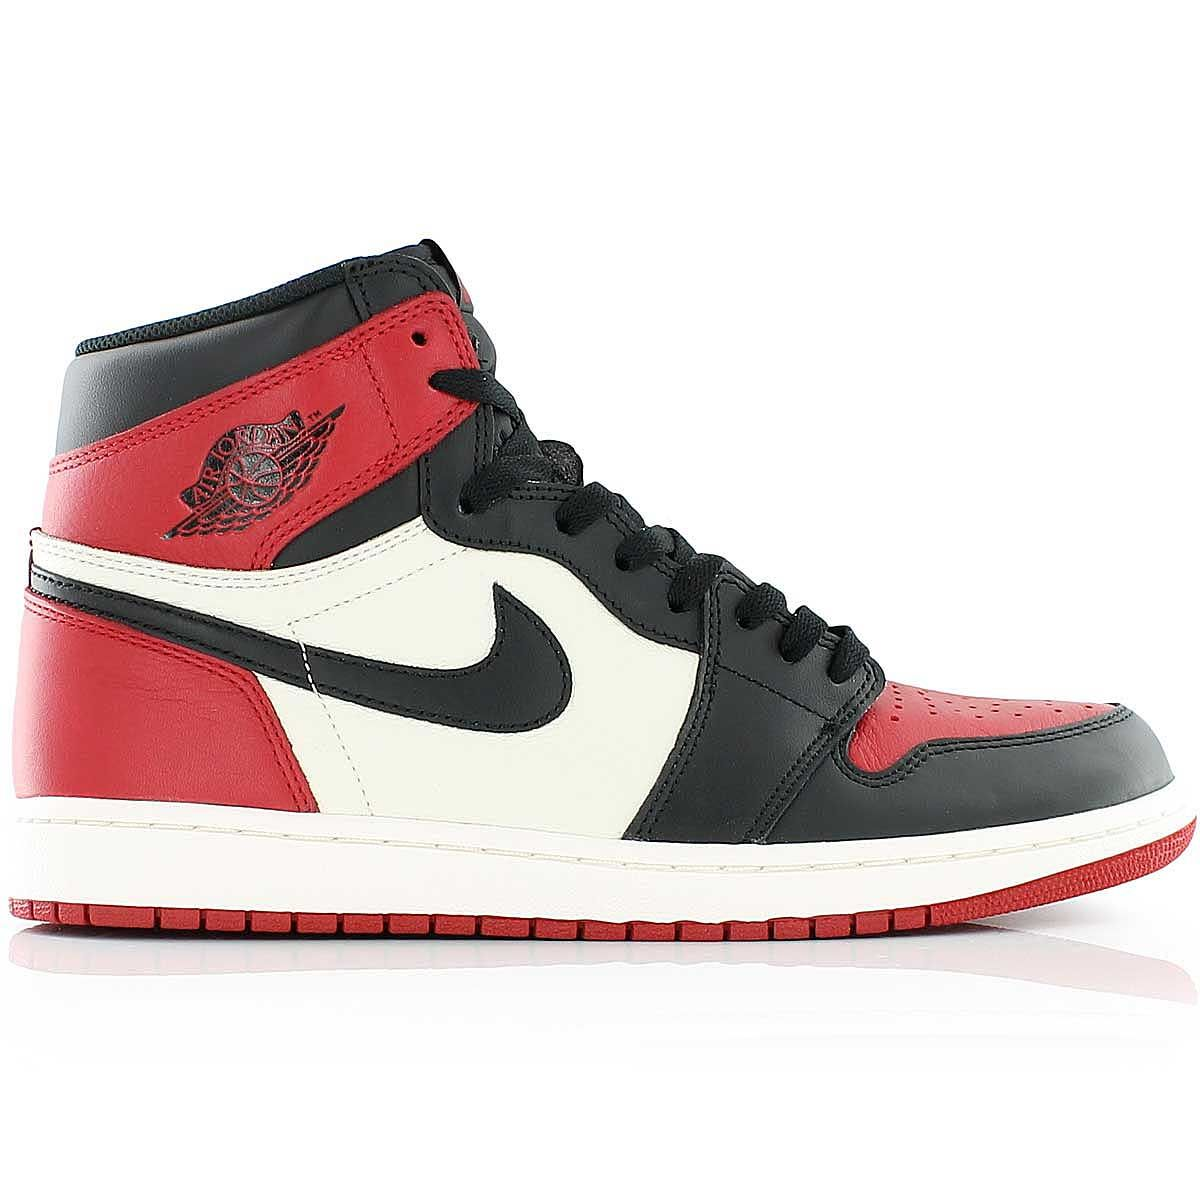 5e174c5f8c2e Air Jordan 1 Retro High OG